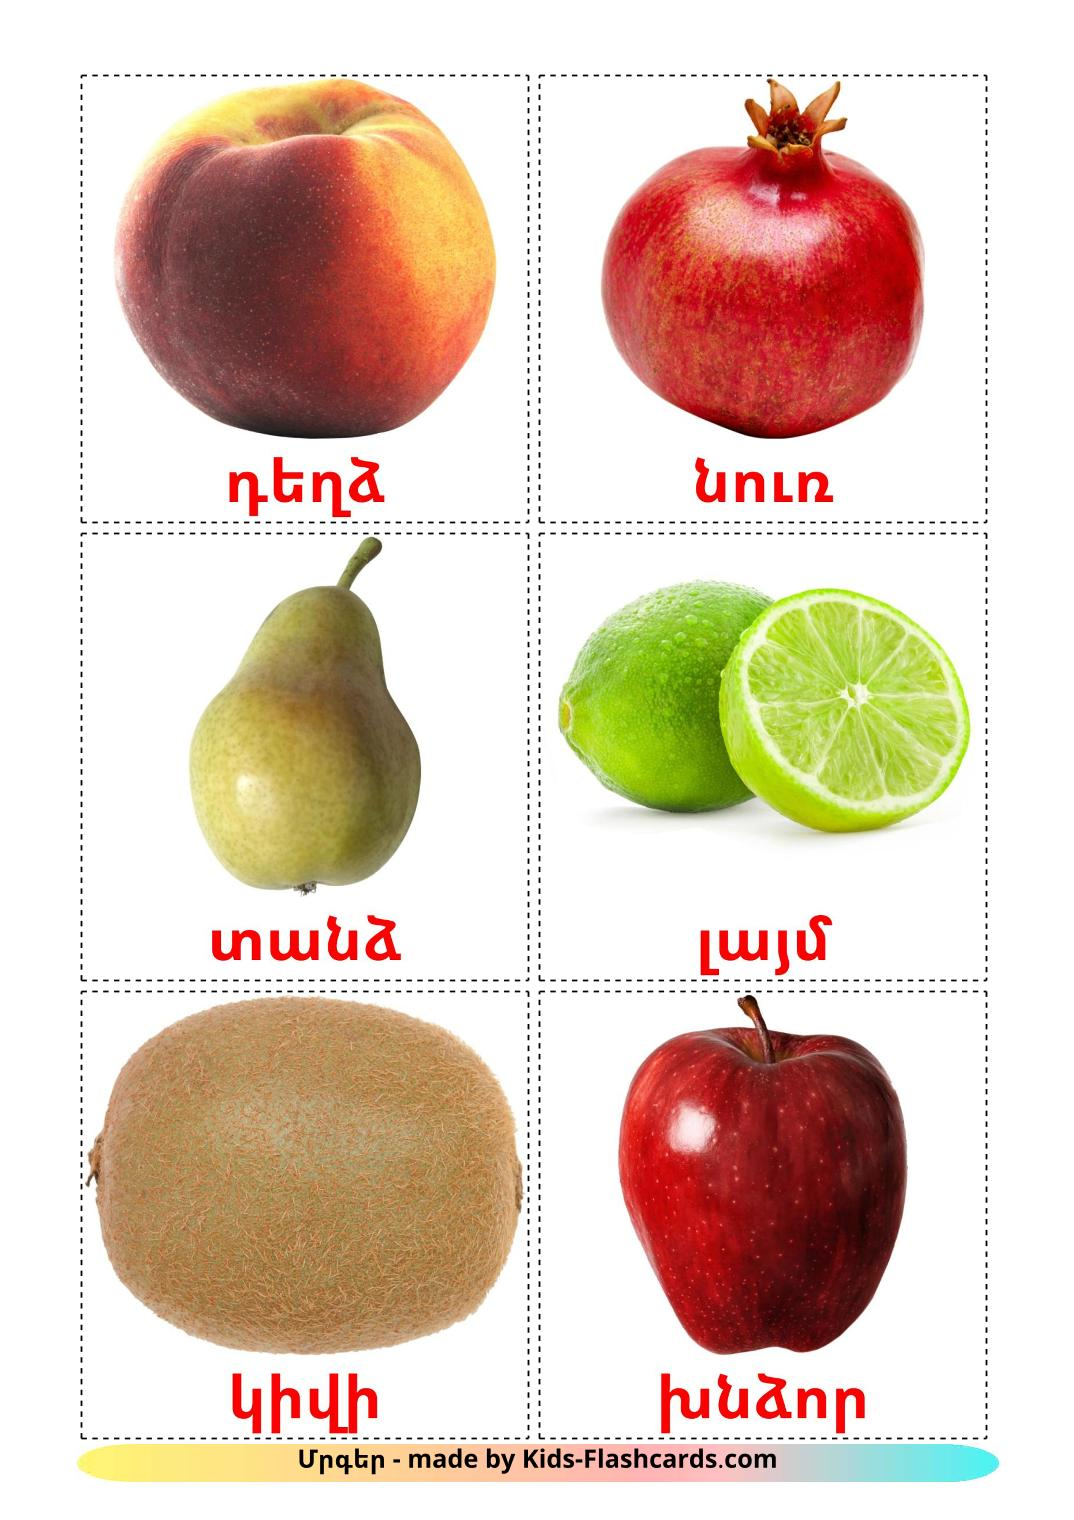 Fruits - 20 Free Printable armenian Flashcards